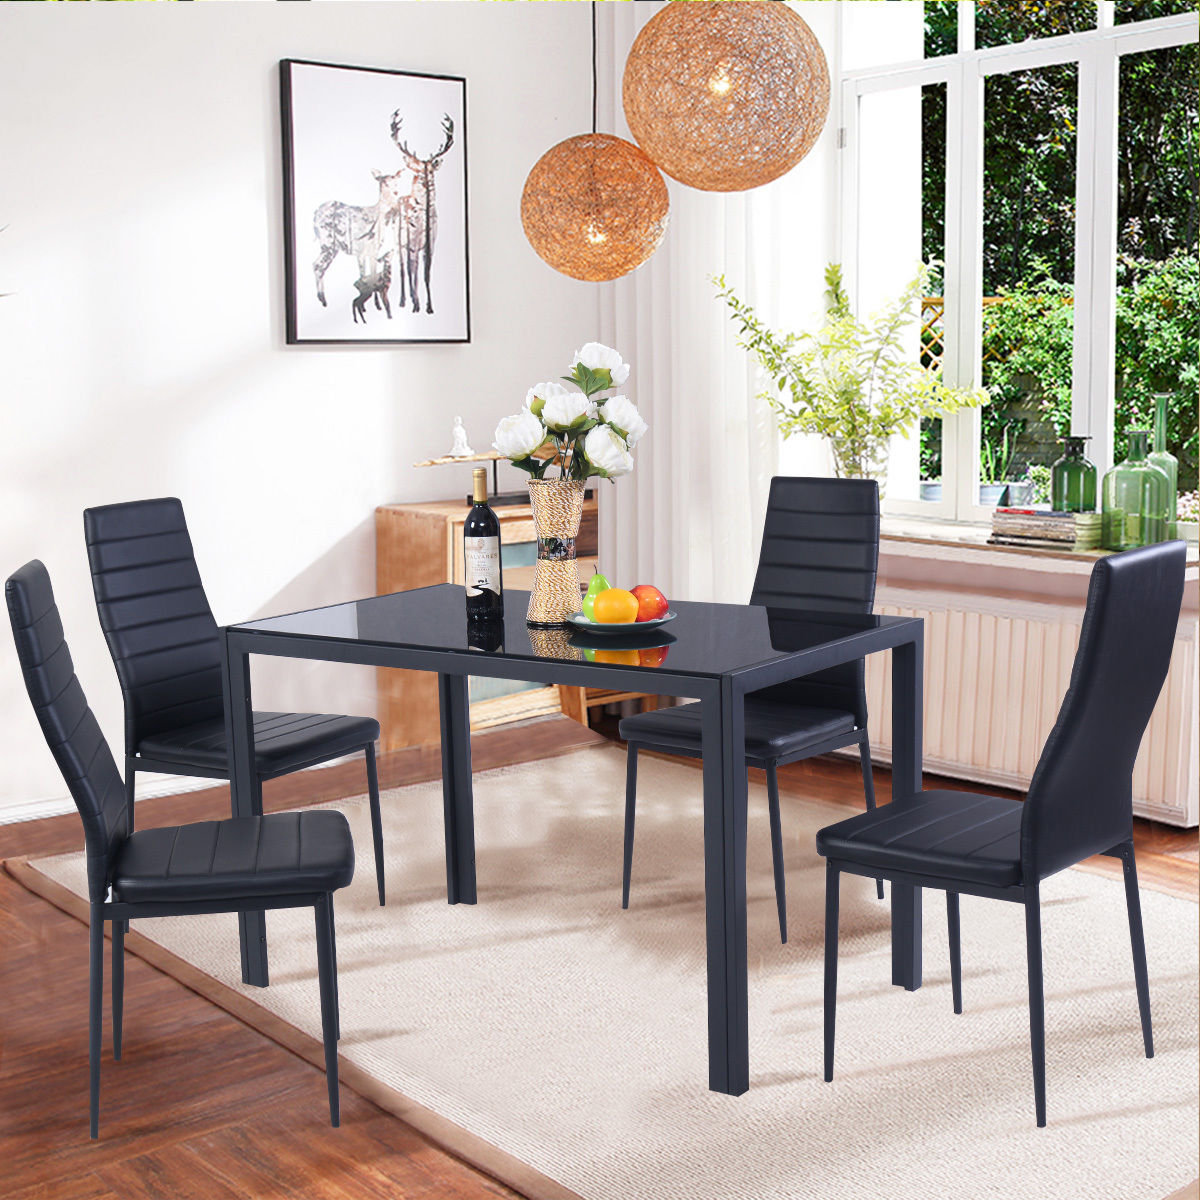 Amazing Costway 5 Piece Kitchen Dining Set Glass Metal Table And 4 Chairs Breakfast  Furniture   Walmart.com